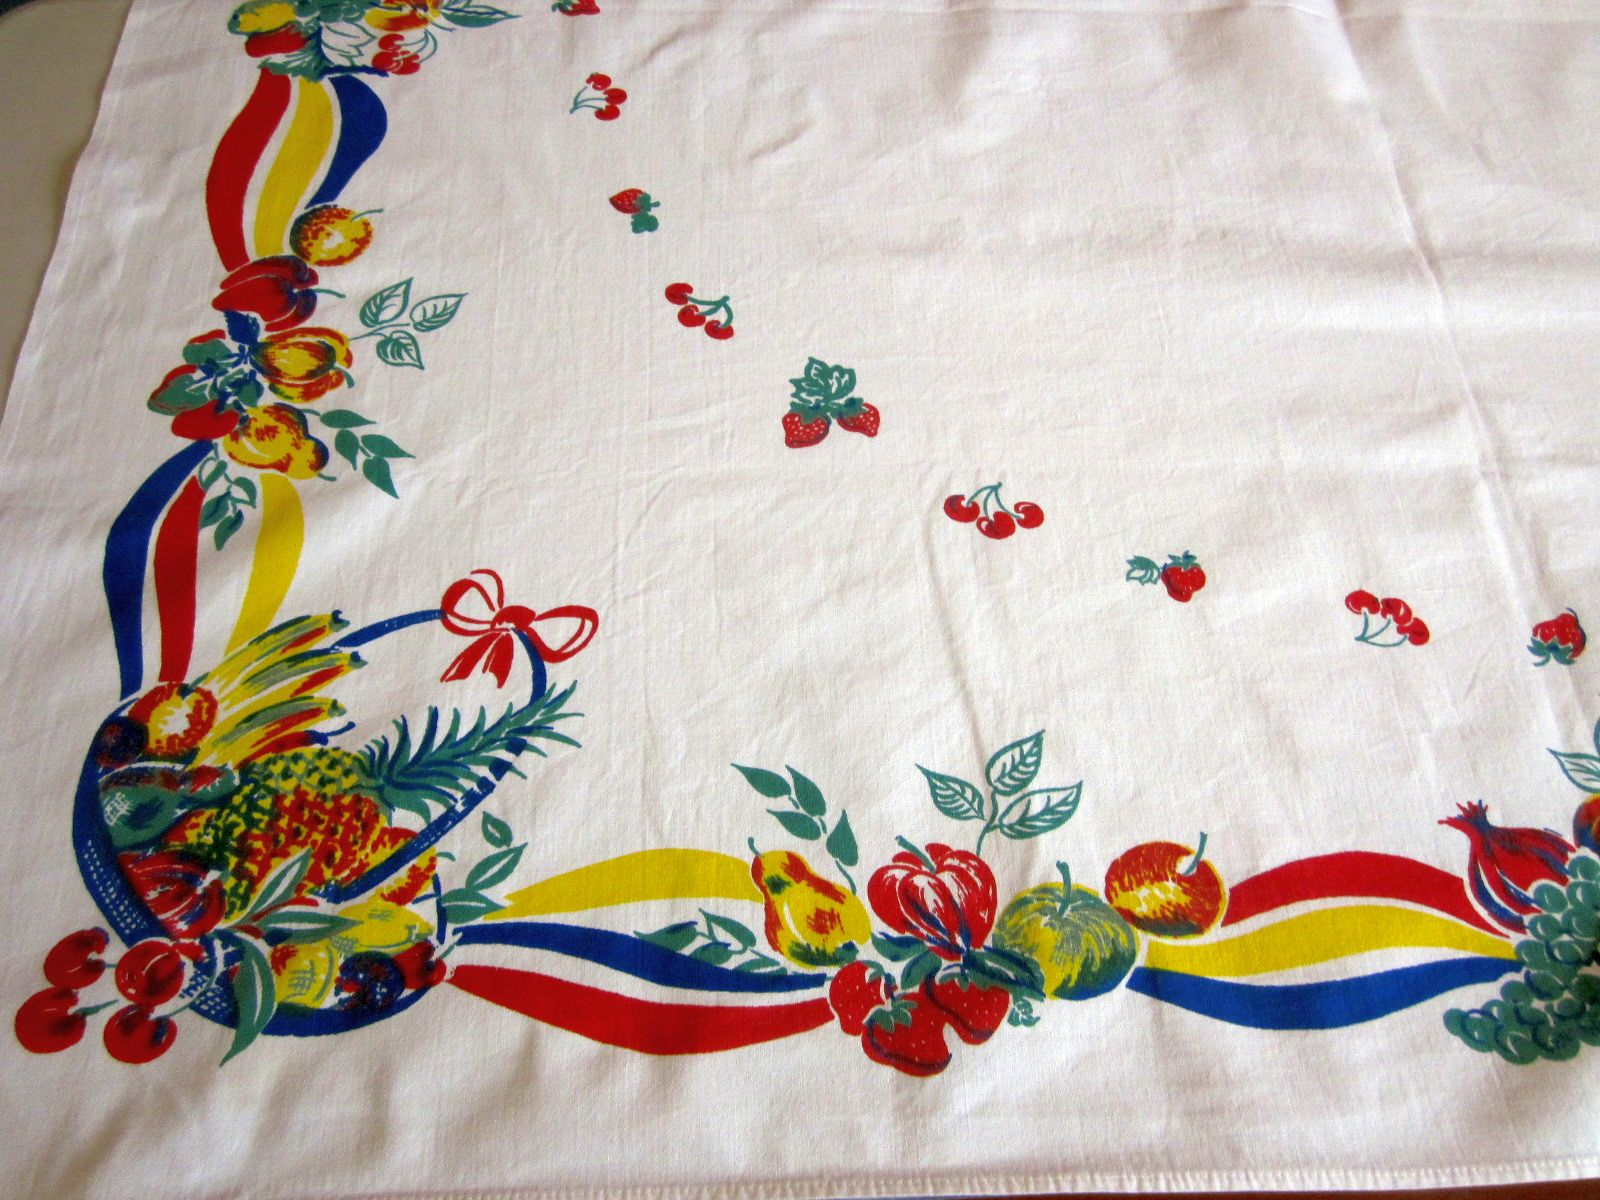 Primary Red Blue Yellow Fruit Baskets Vintage Printed Tablecloth (52 X 45)